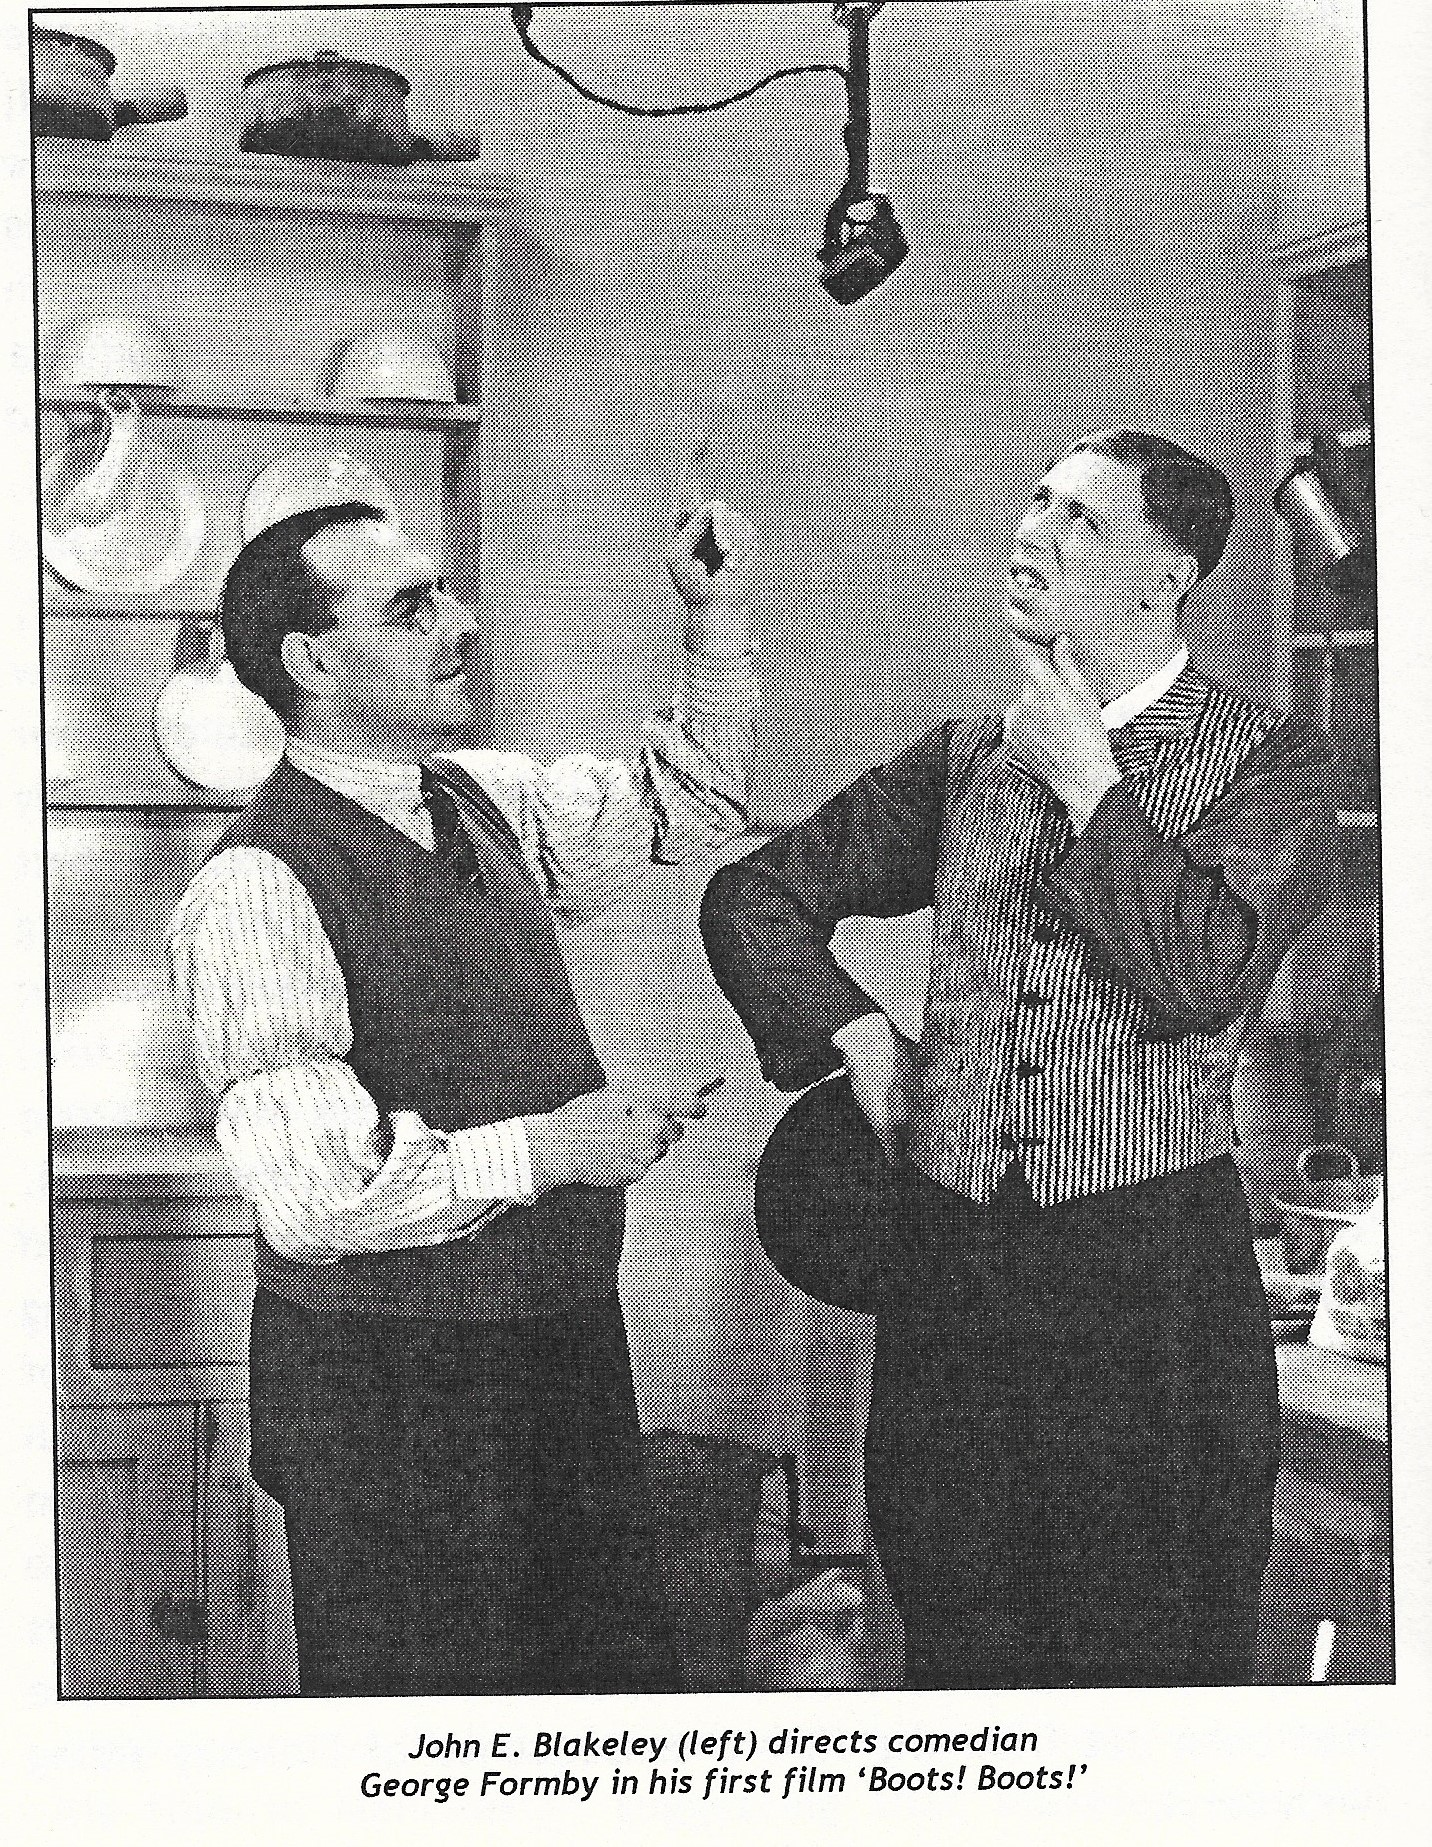 John E. Blakeley and George Formby in Boots! Boots! (1934)